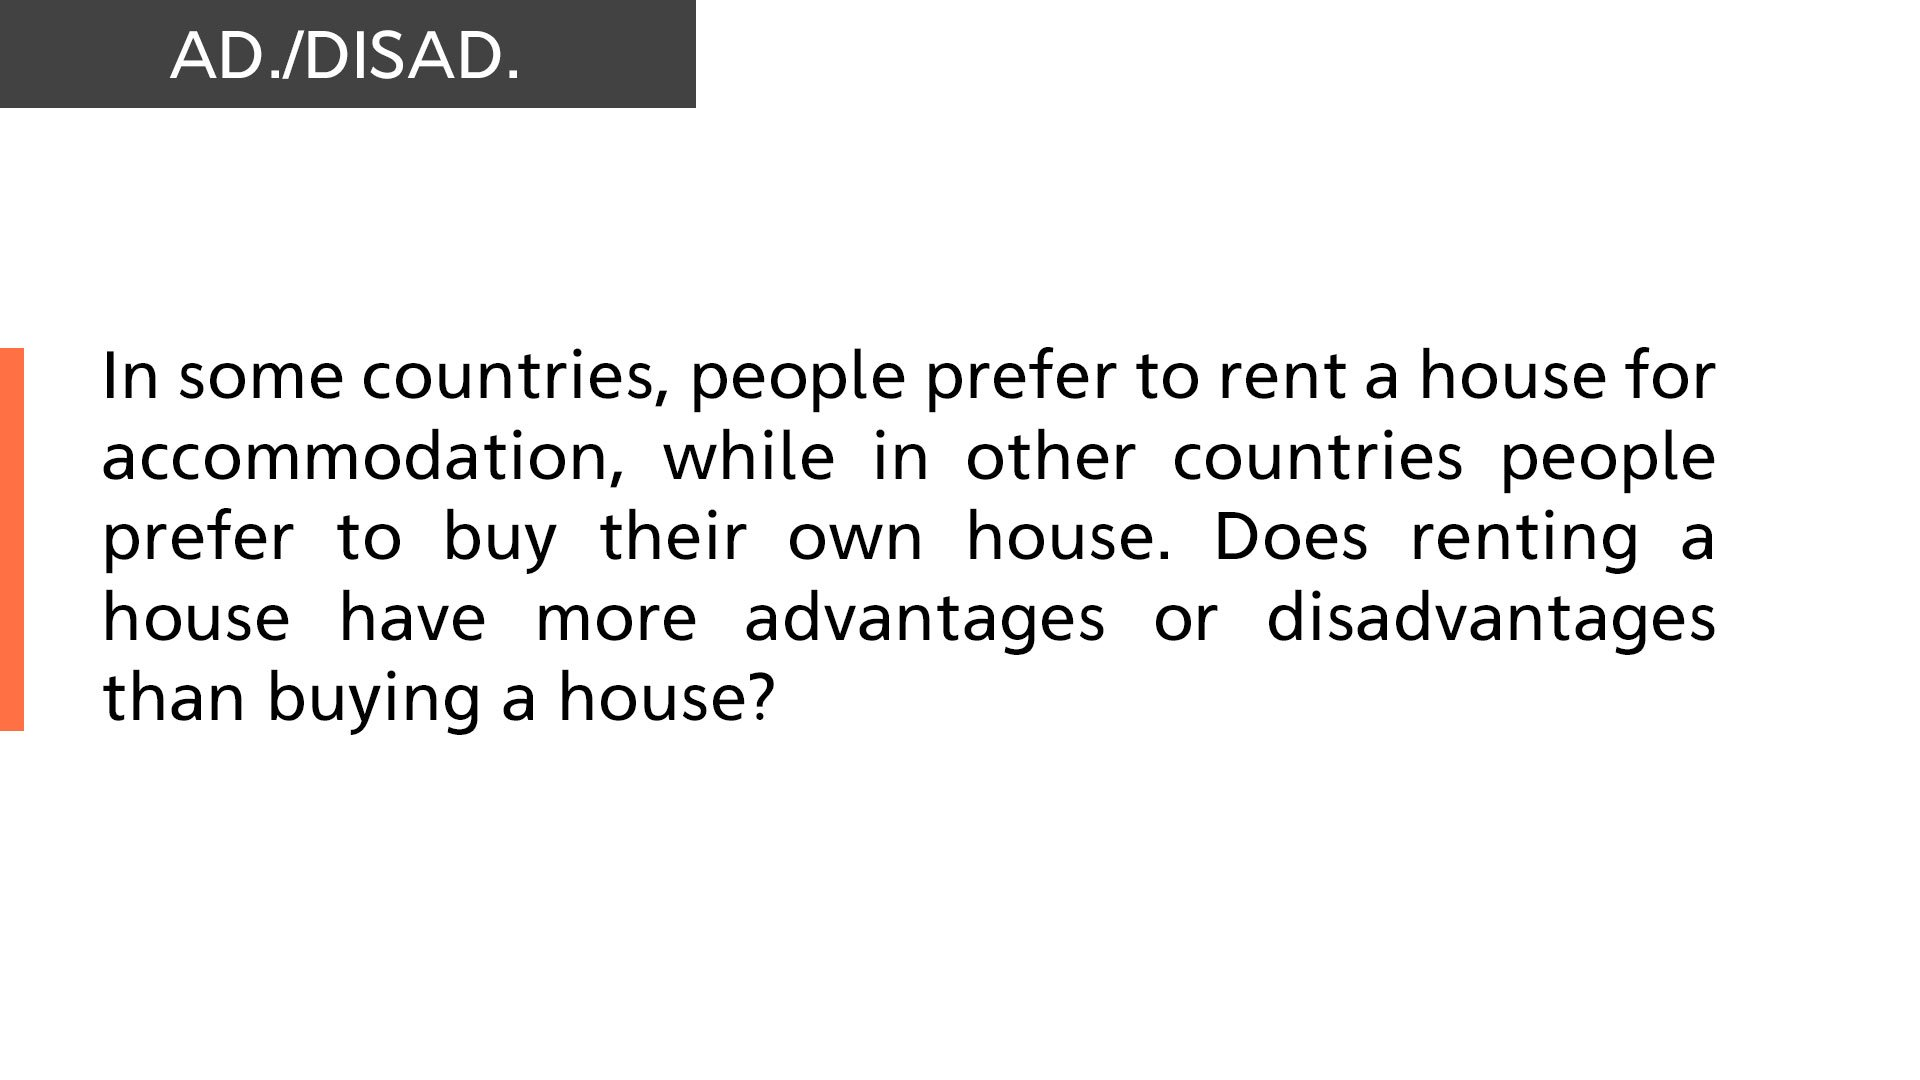 people prefer to rent a house for accommodation